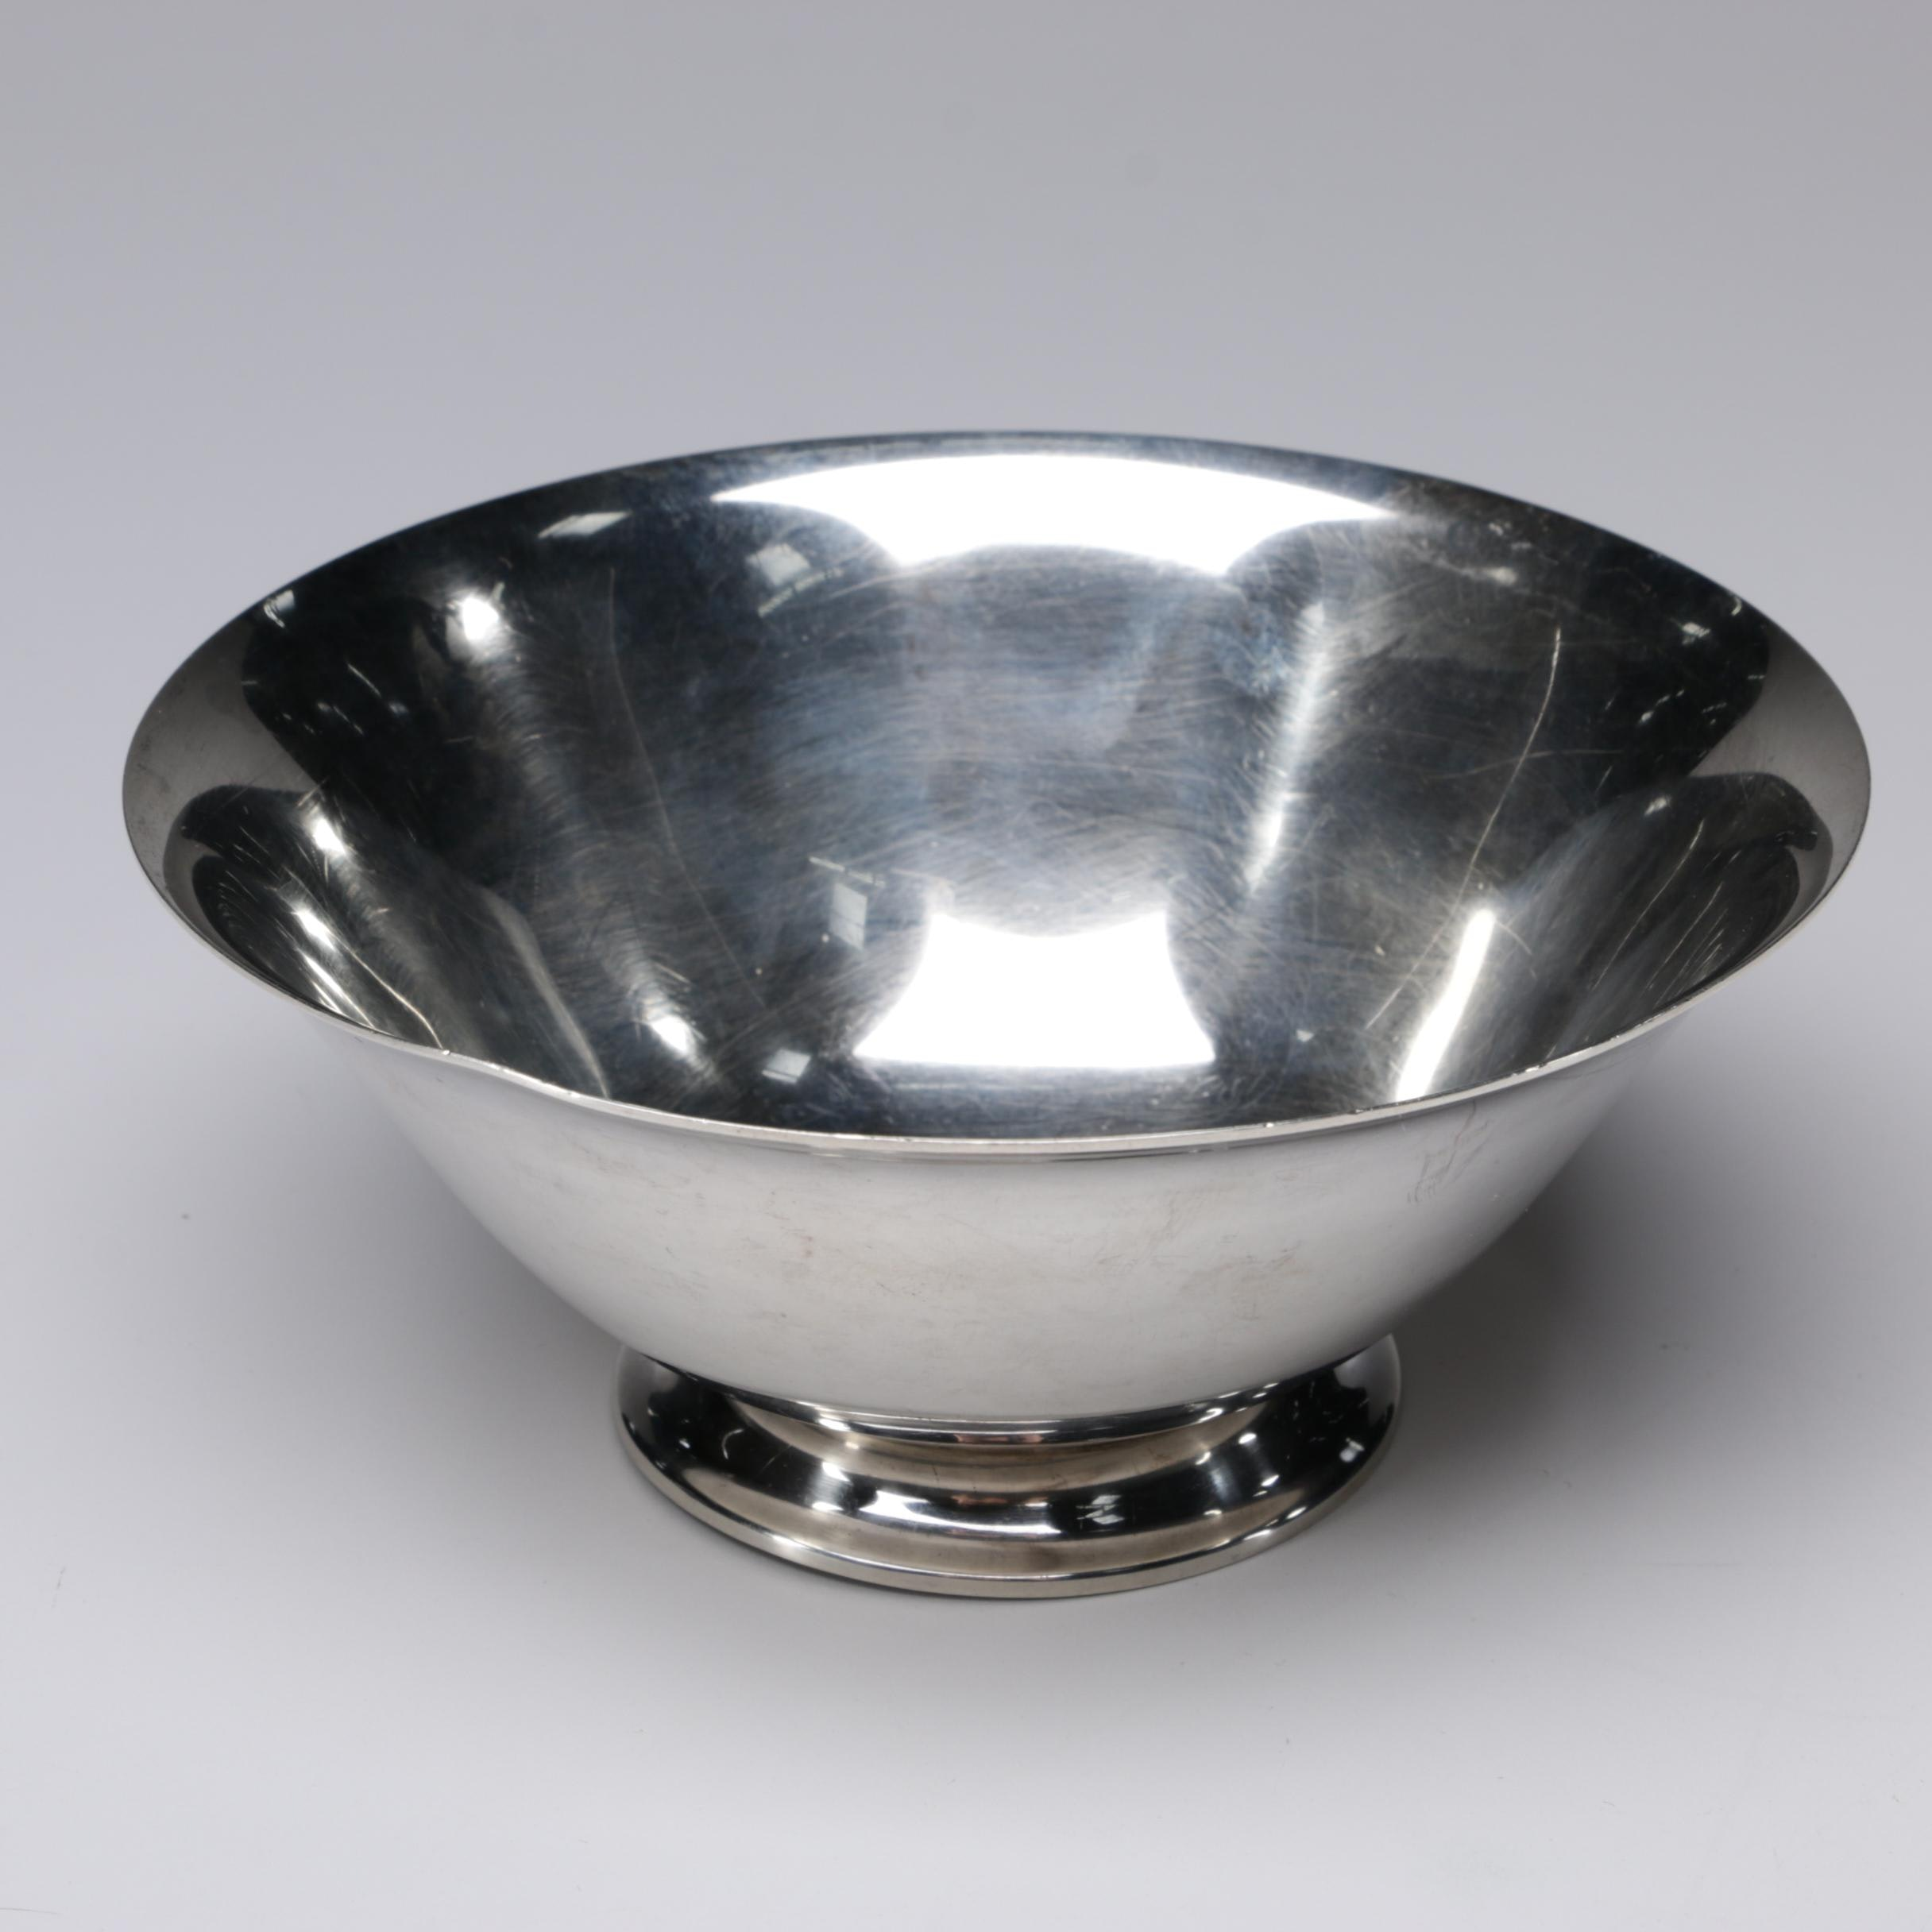 Tiffany & Co. Sterling Silver Footed Bowl, 1947-1956